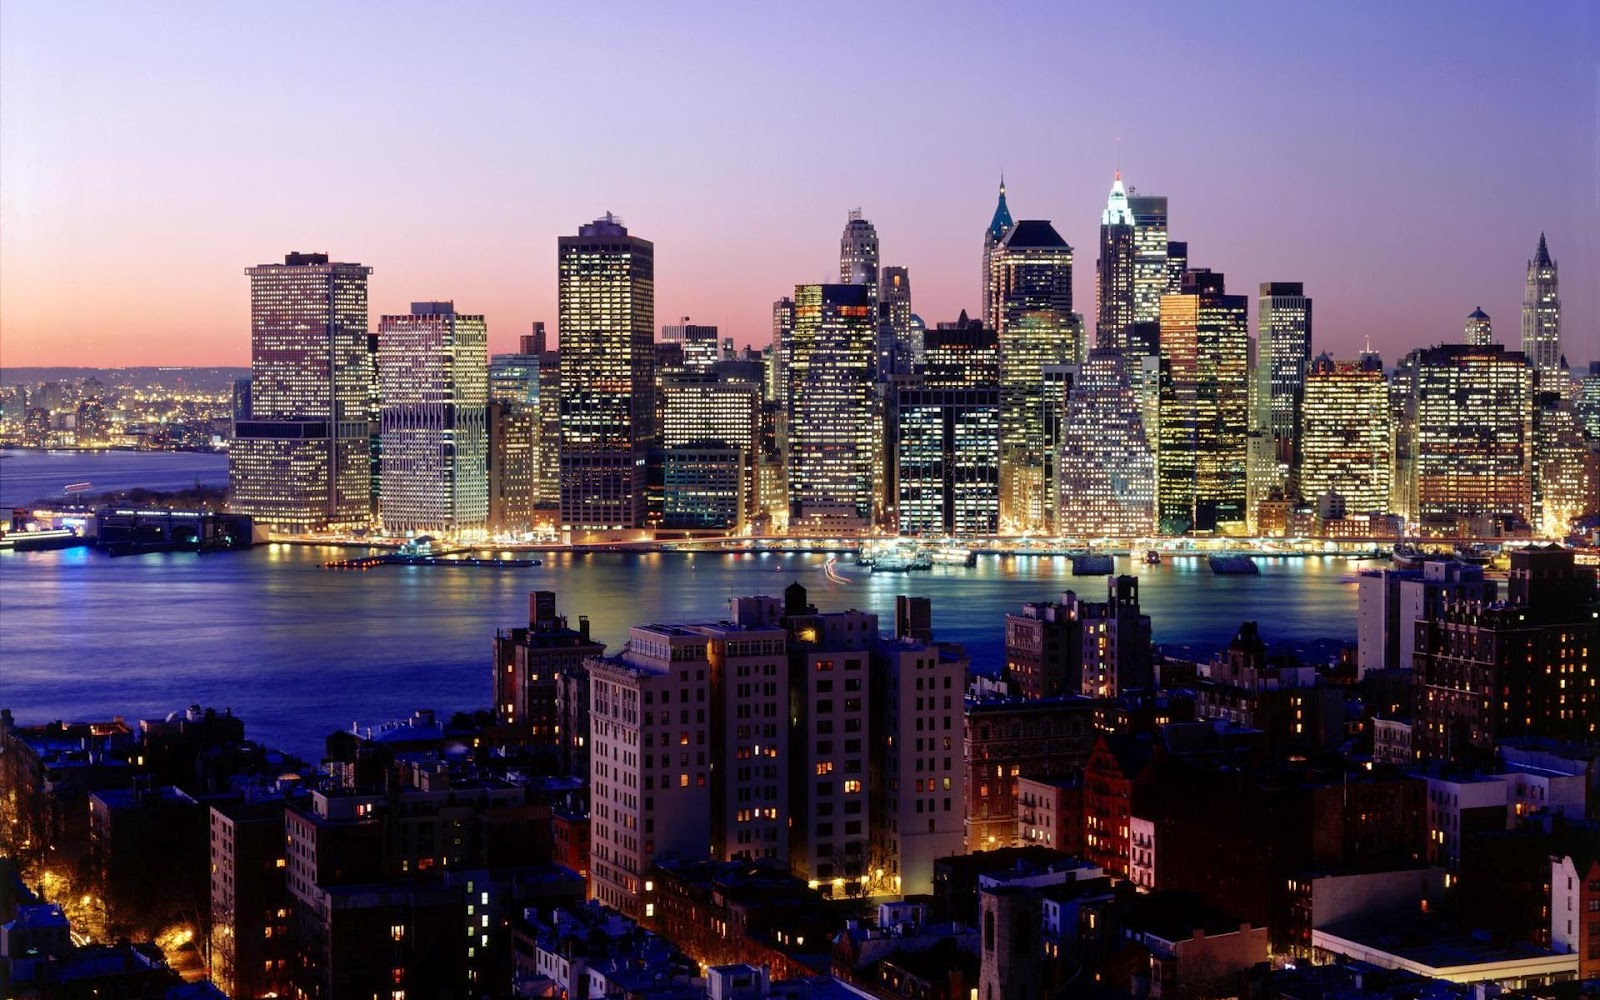 http://3.bp.blogspot.com/-UVkTJ2oiI8w/T58oyrLmXOI/AAAAAAAAbVc/YJsoENBvuTw/s1600/New-York-NYC-USA-Wallpapers_02.jpg